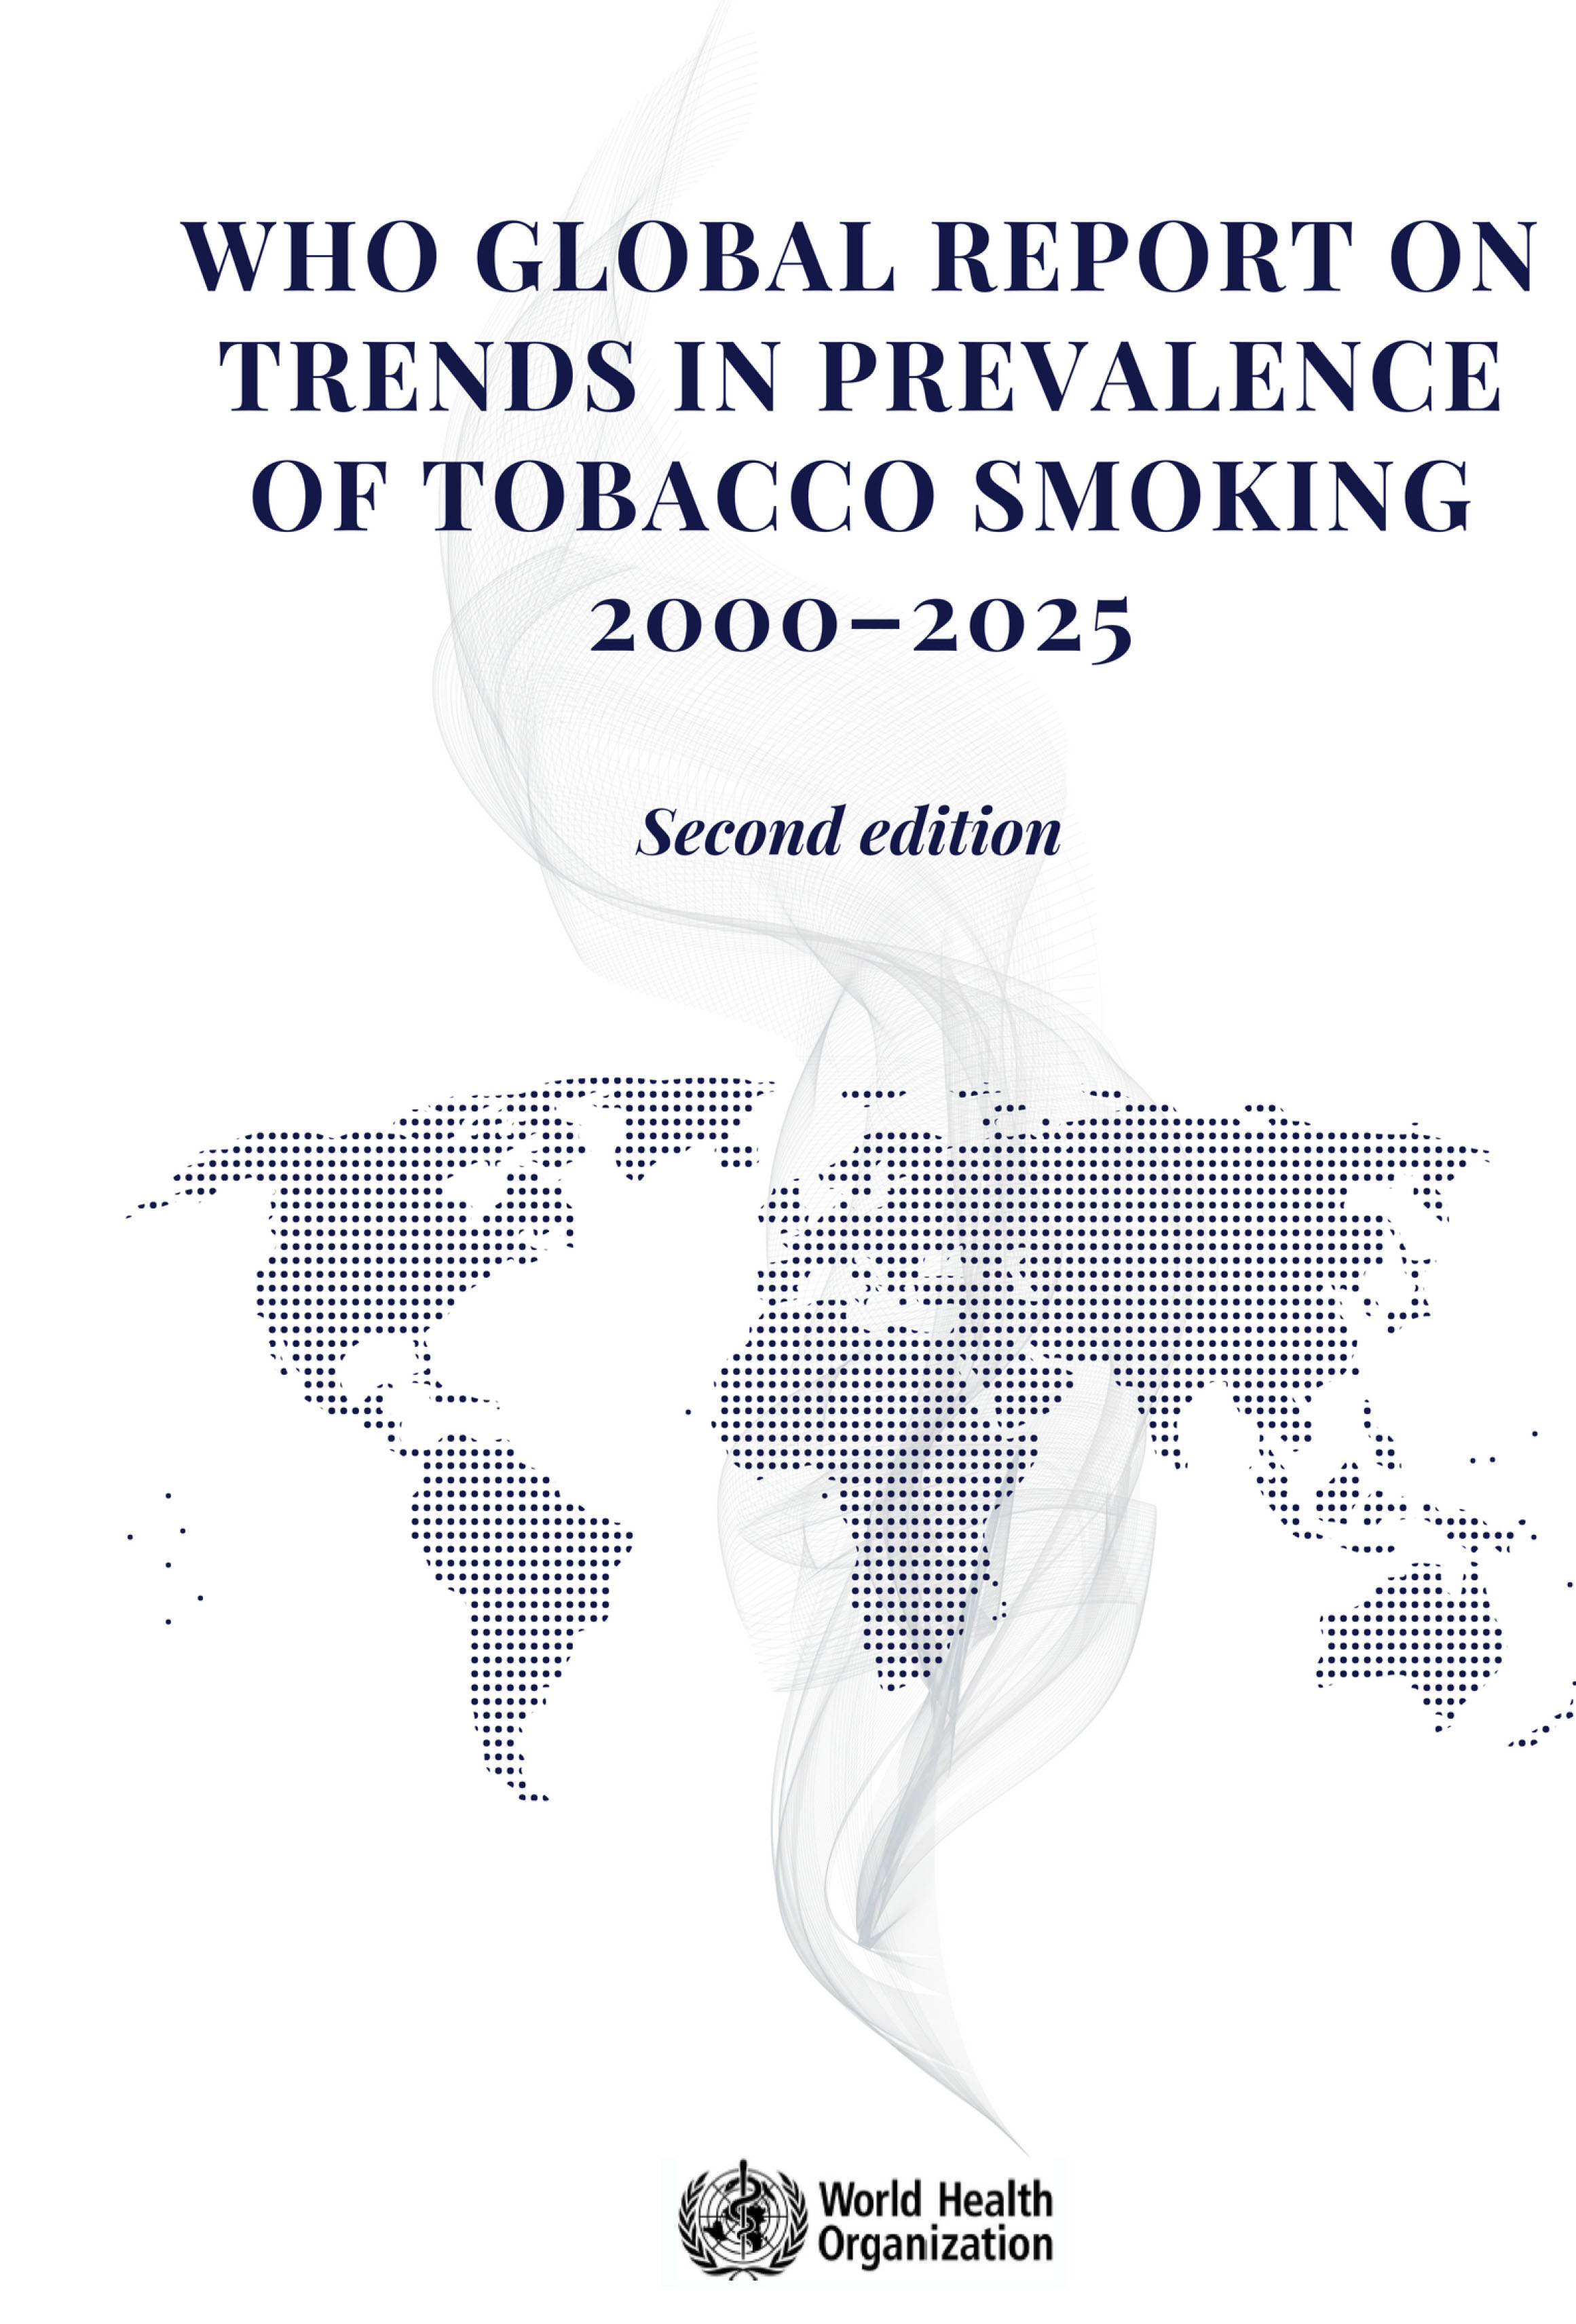 who global report on trends in prevalence of tobacco smoking 2000 - 2025